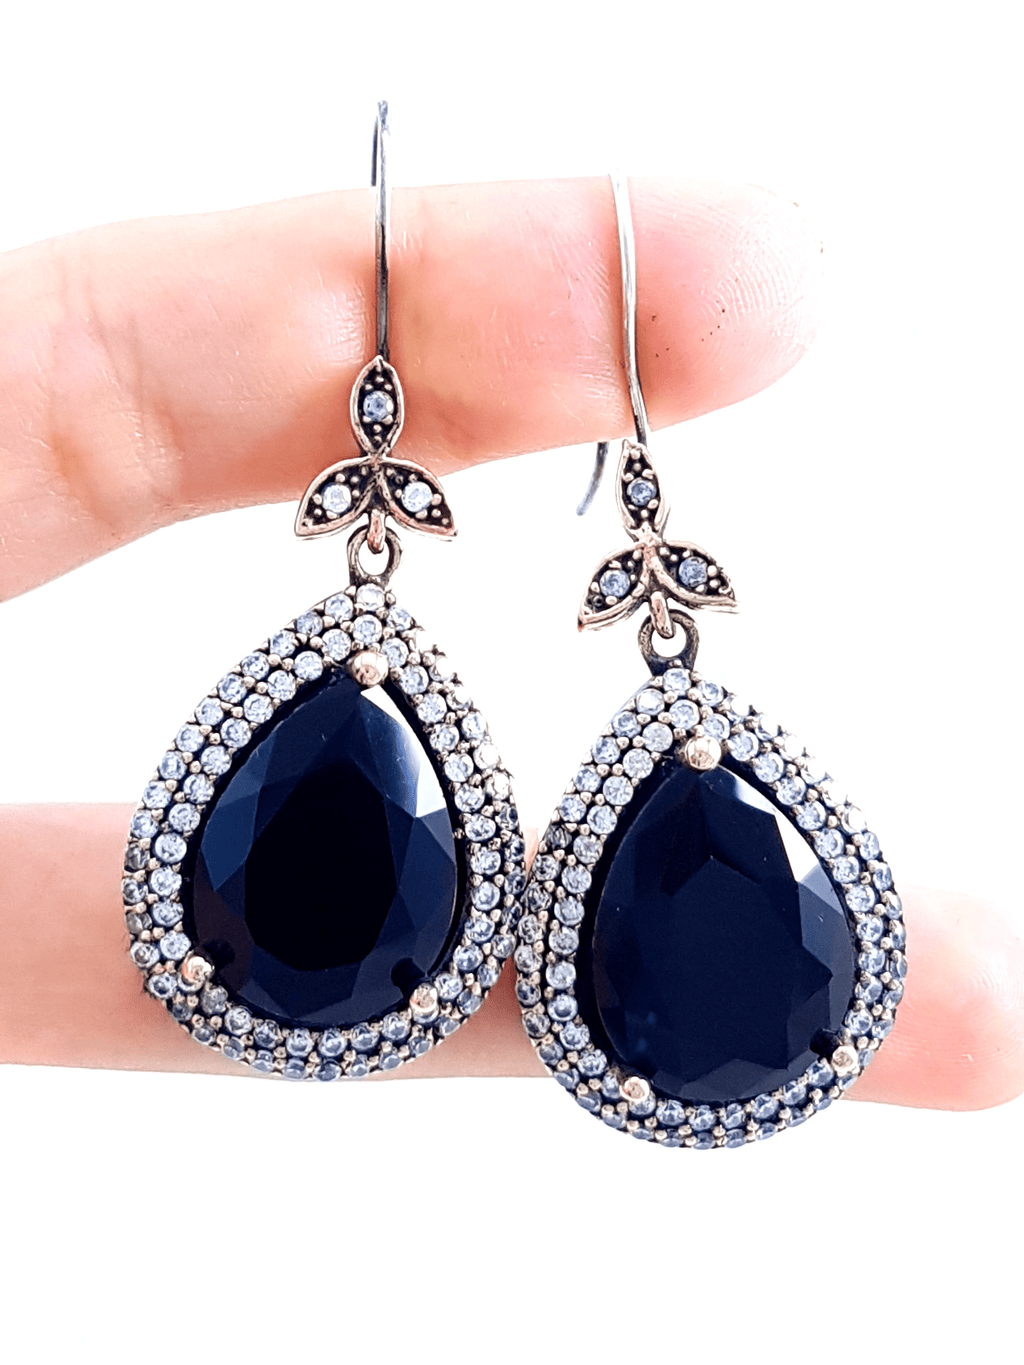 Dark Blue EARRINGS Turkish Wholesale Handmade 925 Sterling Silver Jewelry 1974 - Turkishsilverjewelry